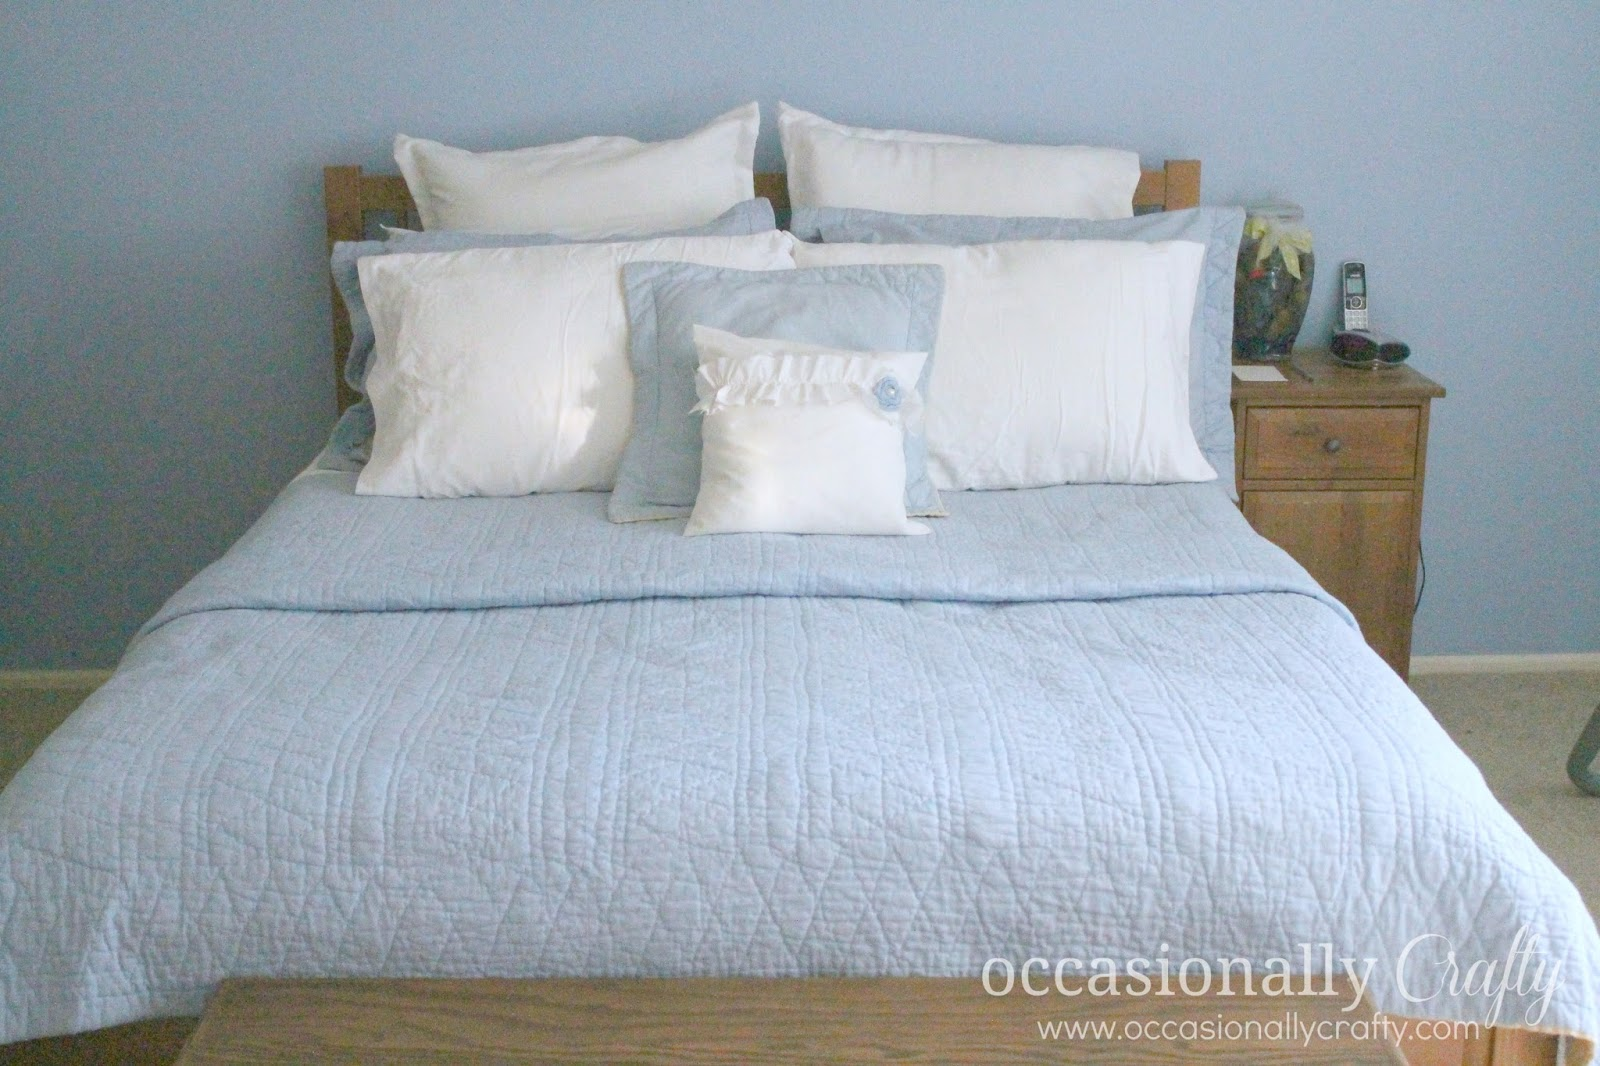 Master Bedroom Quilt master bedroom bedding makeover | occasionally crafty: master